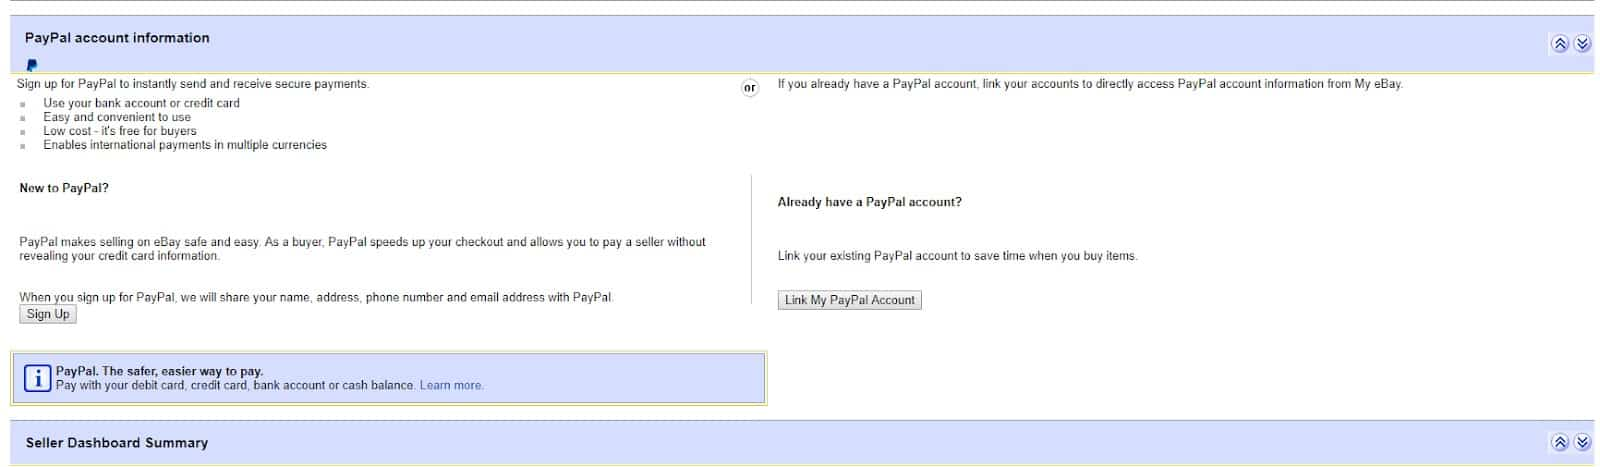 eBay - How to Connect PayPal to an eBay Account 2